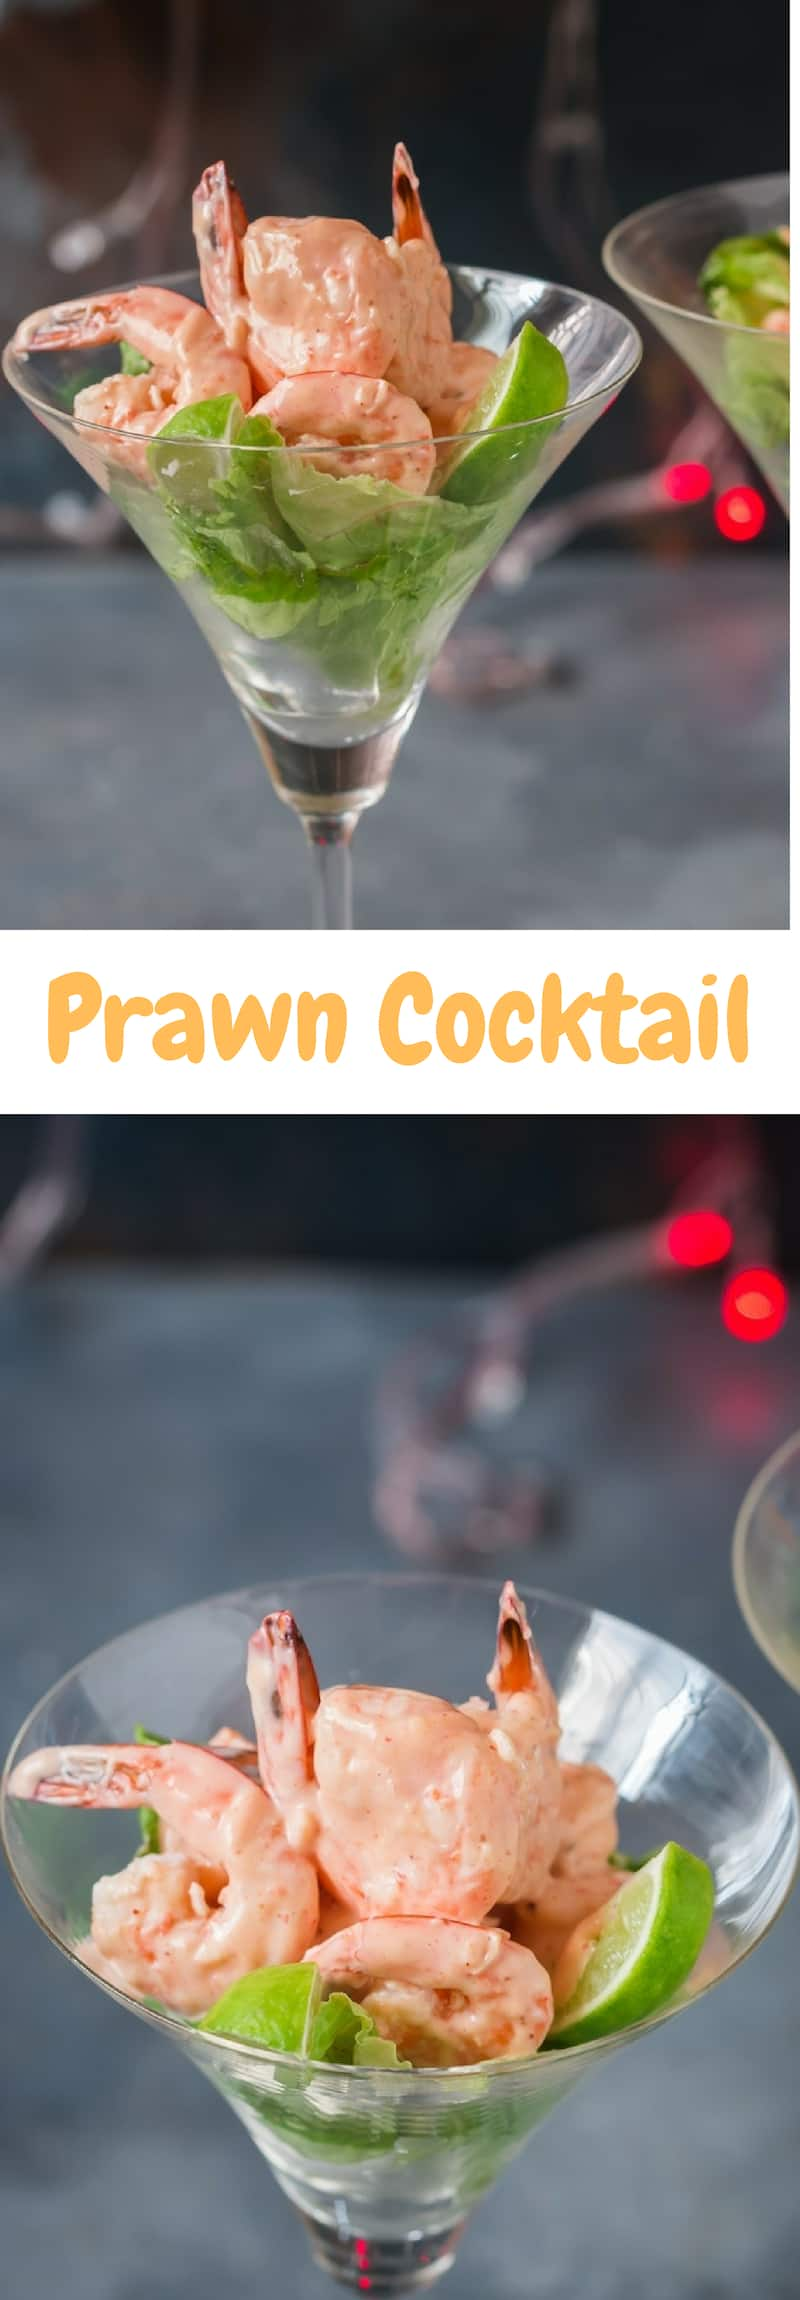 prawn cocktail served in glass ware with text overlay